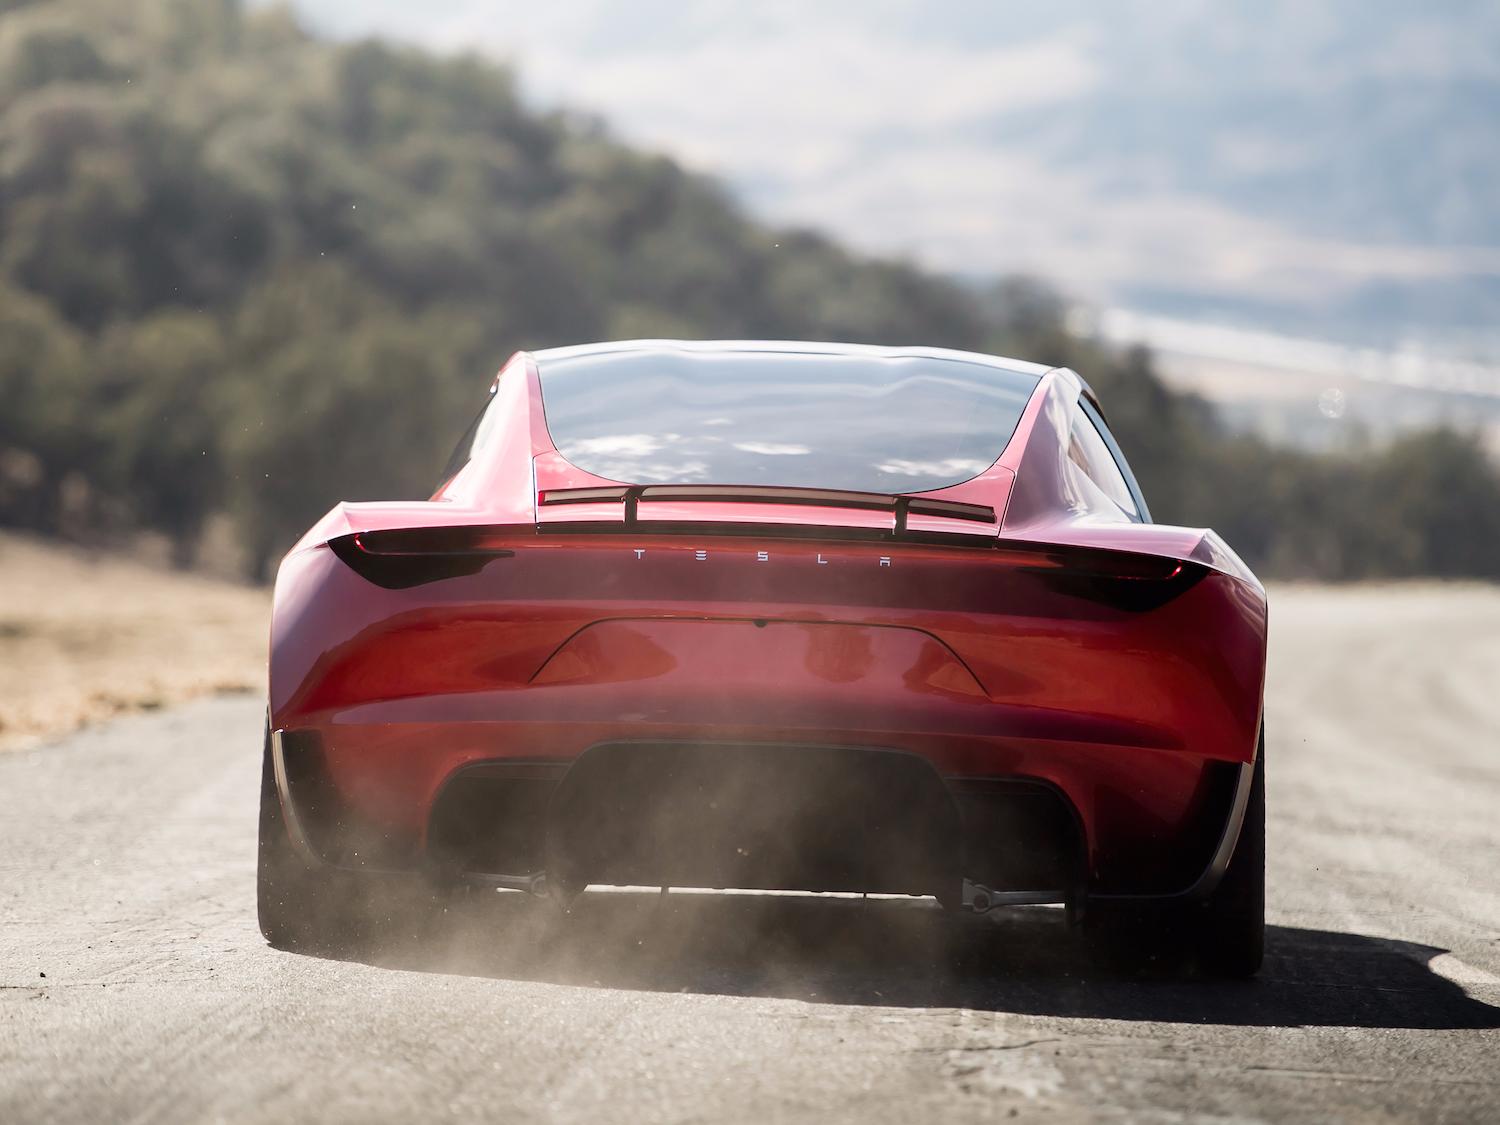 65 Concept of The 2020 Tesla Roadster New Review for The 2020 Tesla Roadster